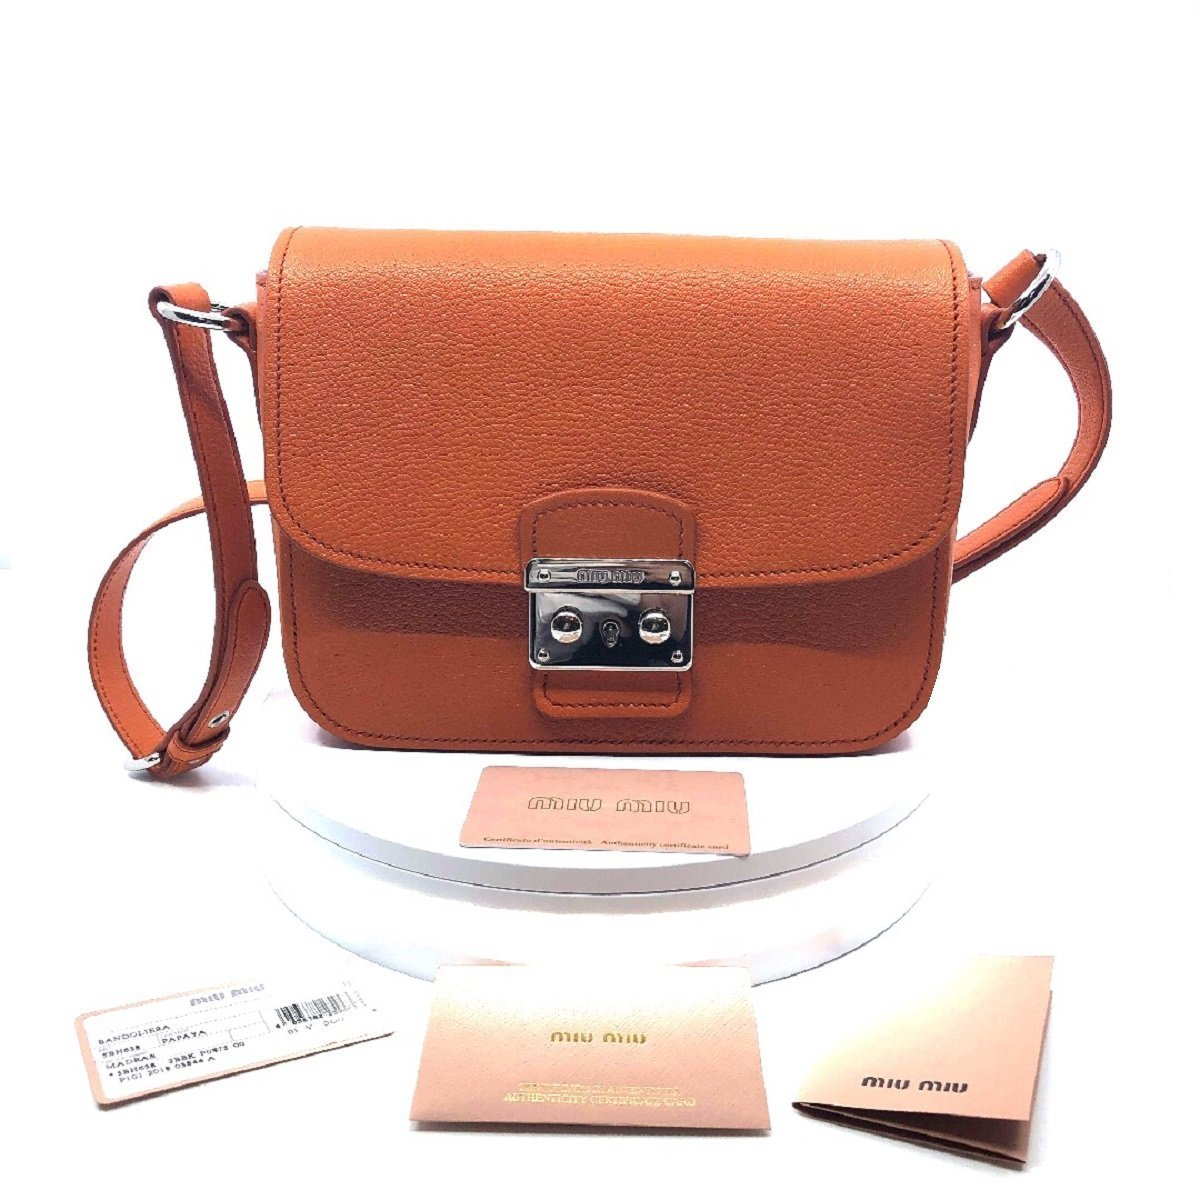 Miu Miu Bandoliera Orange Leather Cross Body Handbag w Silver Hardware 5BH638